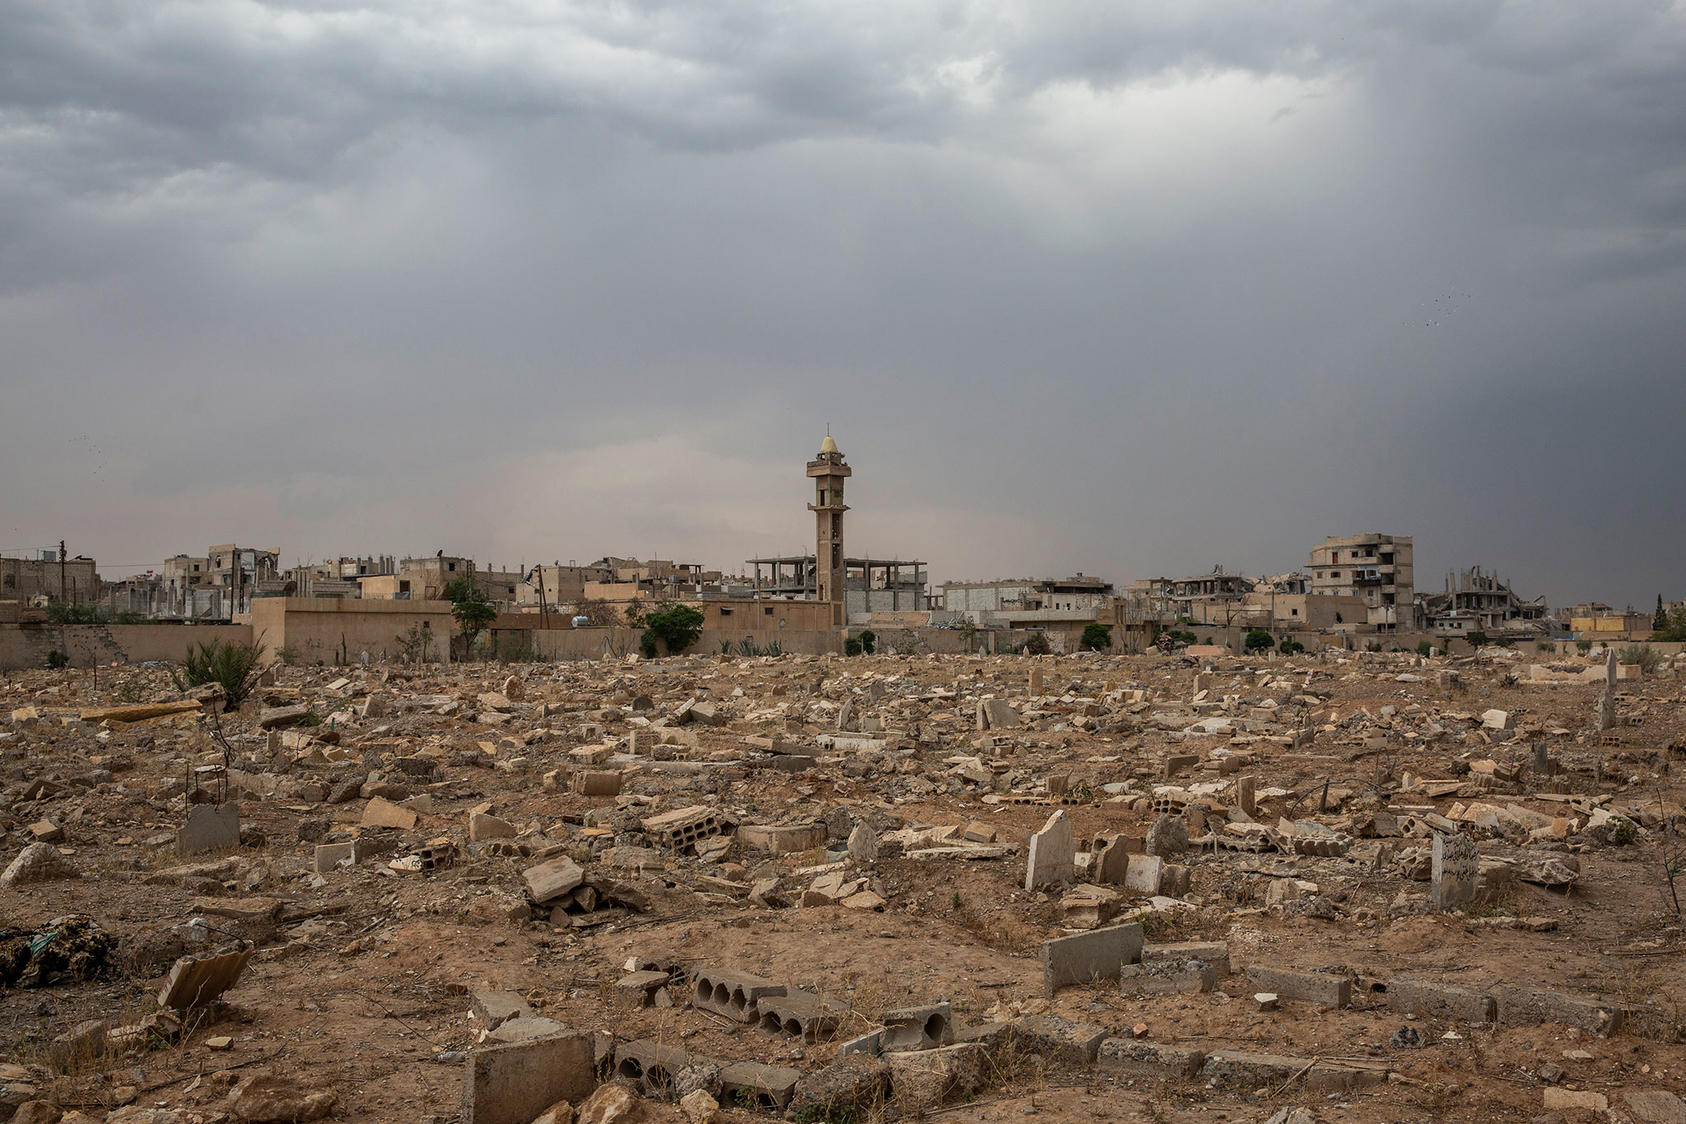 Raqqa's main cemetery, after Islamic State members desecrated the graveyard, in Syria, June 13, 2018. (Ivor Prickett/The New York Times)